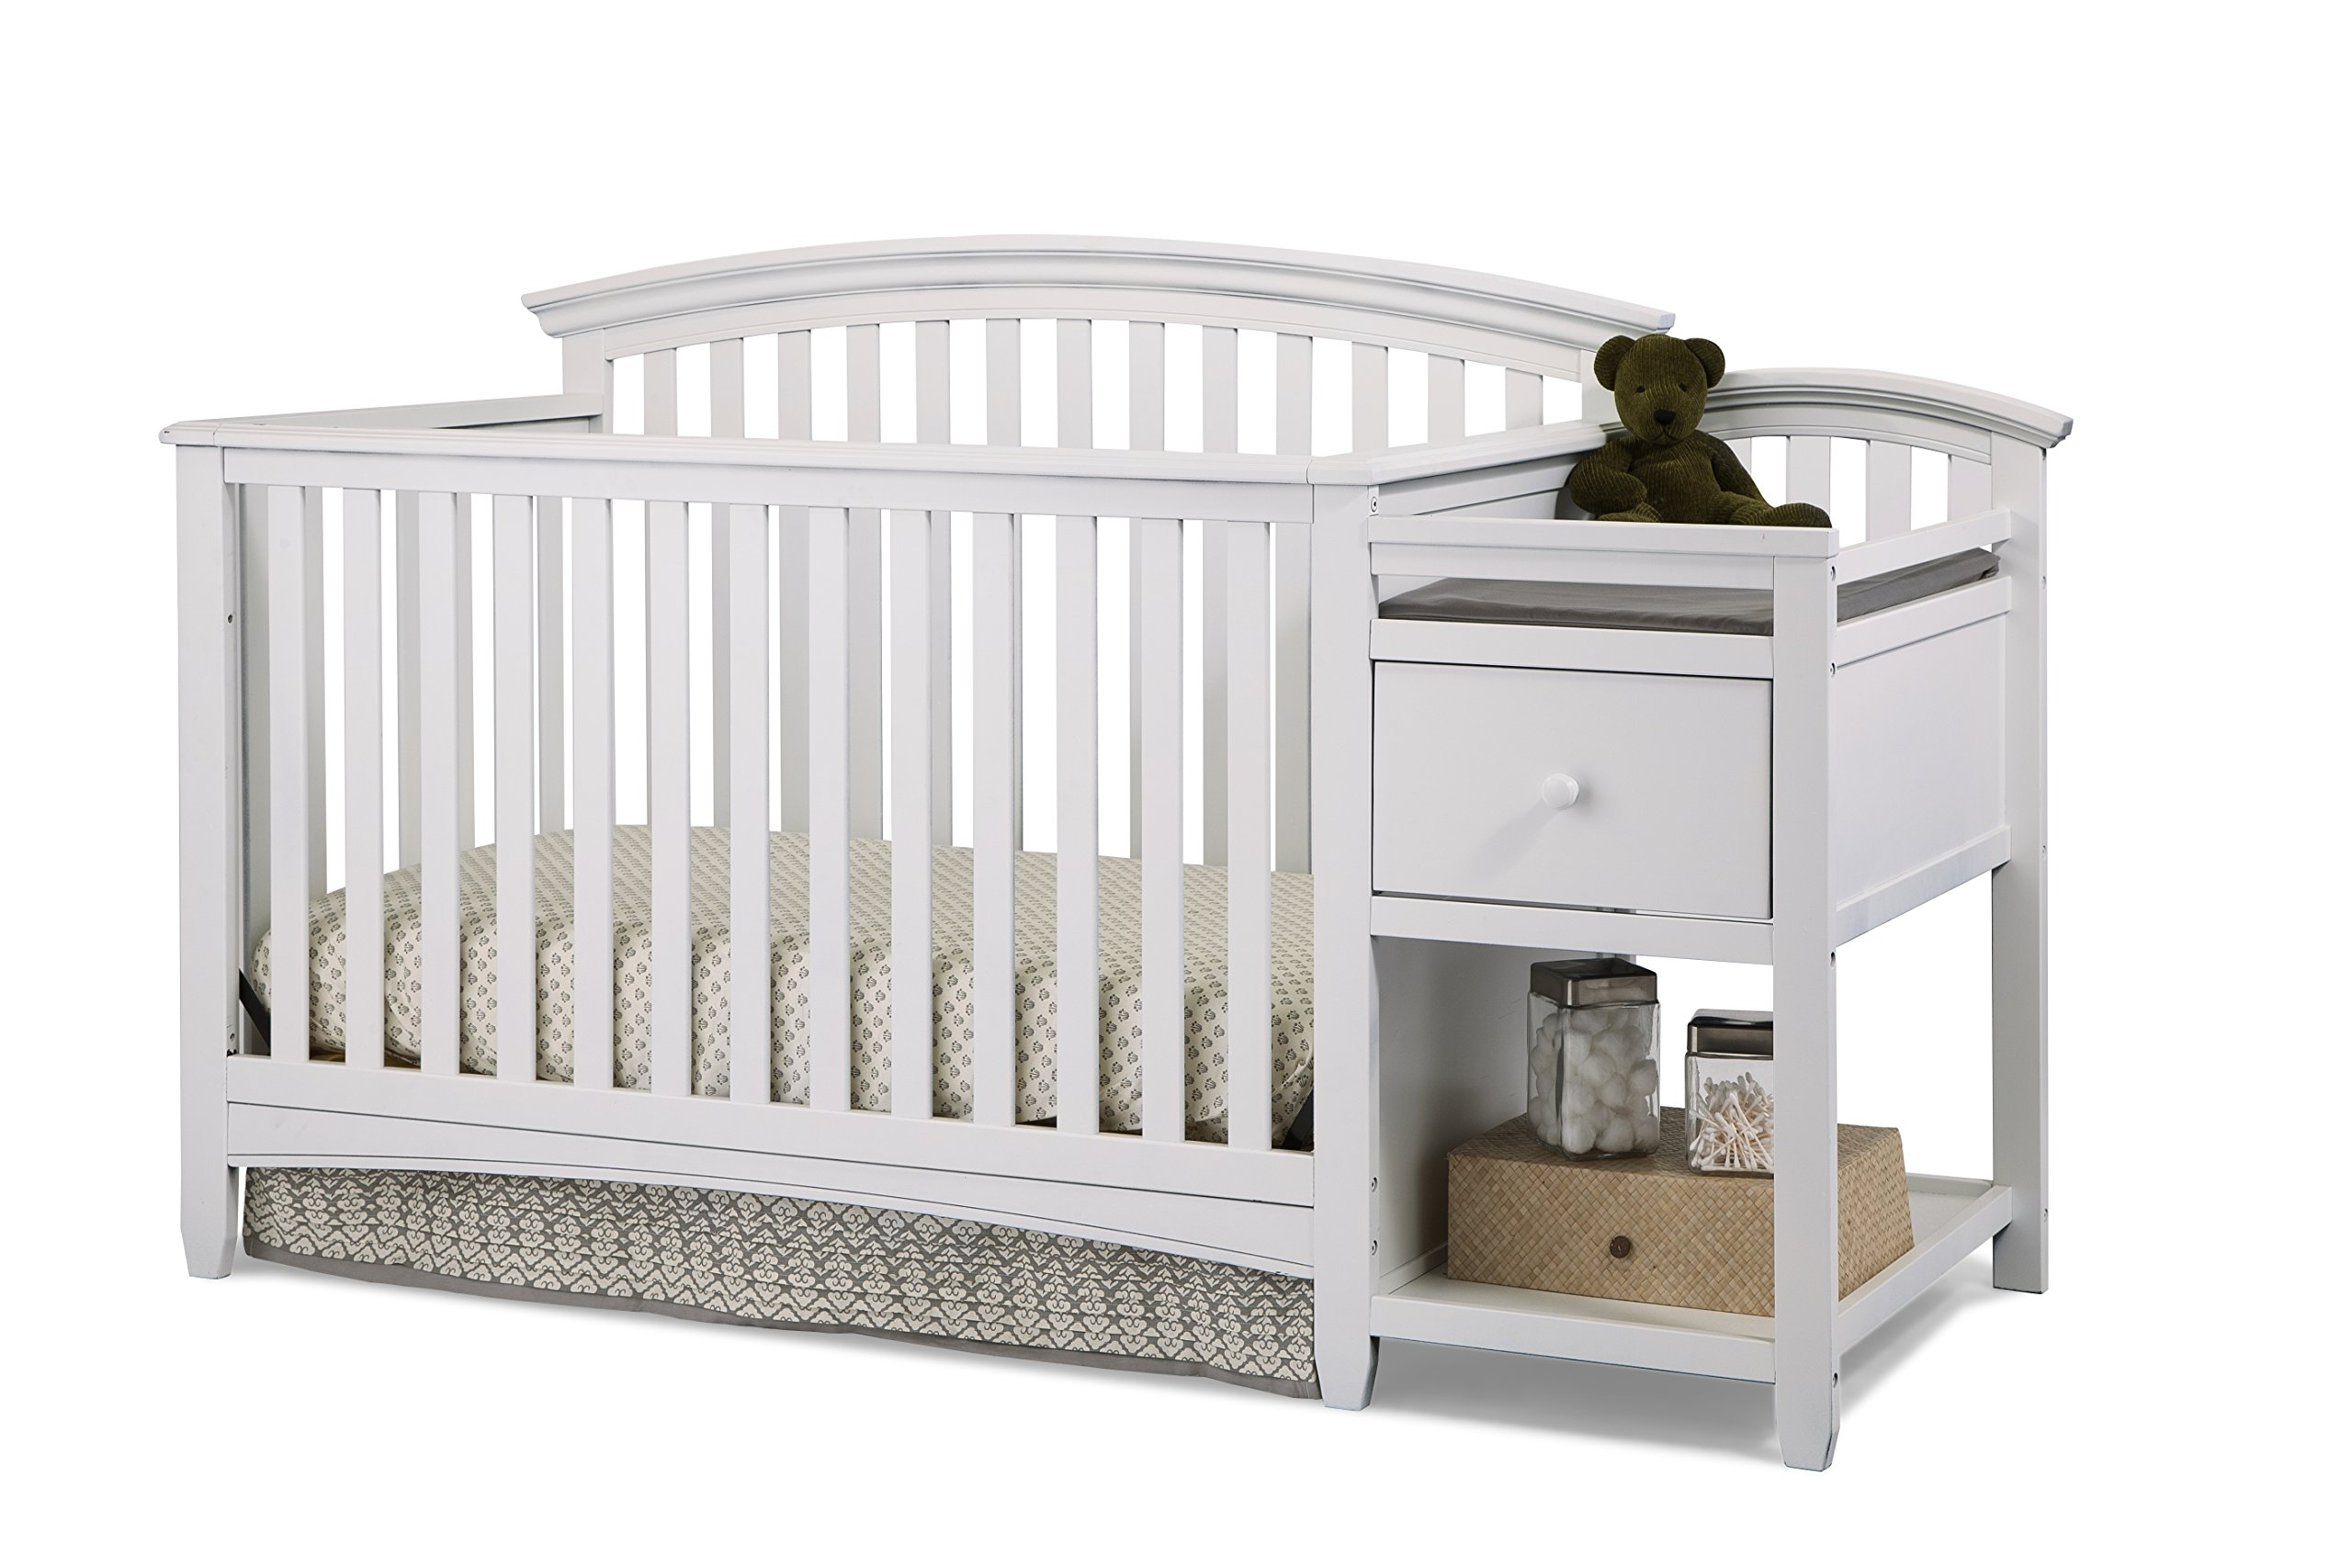 Imagio Baby Montville 4-in-1 Crib and Changer Combo with Pad, White